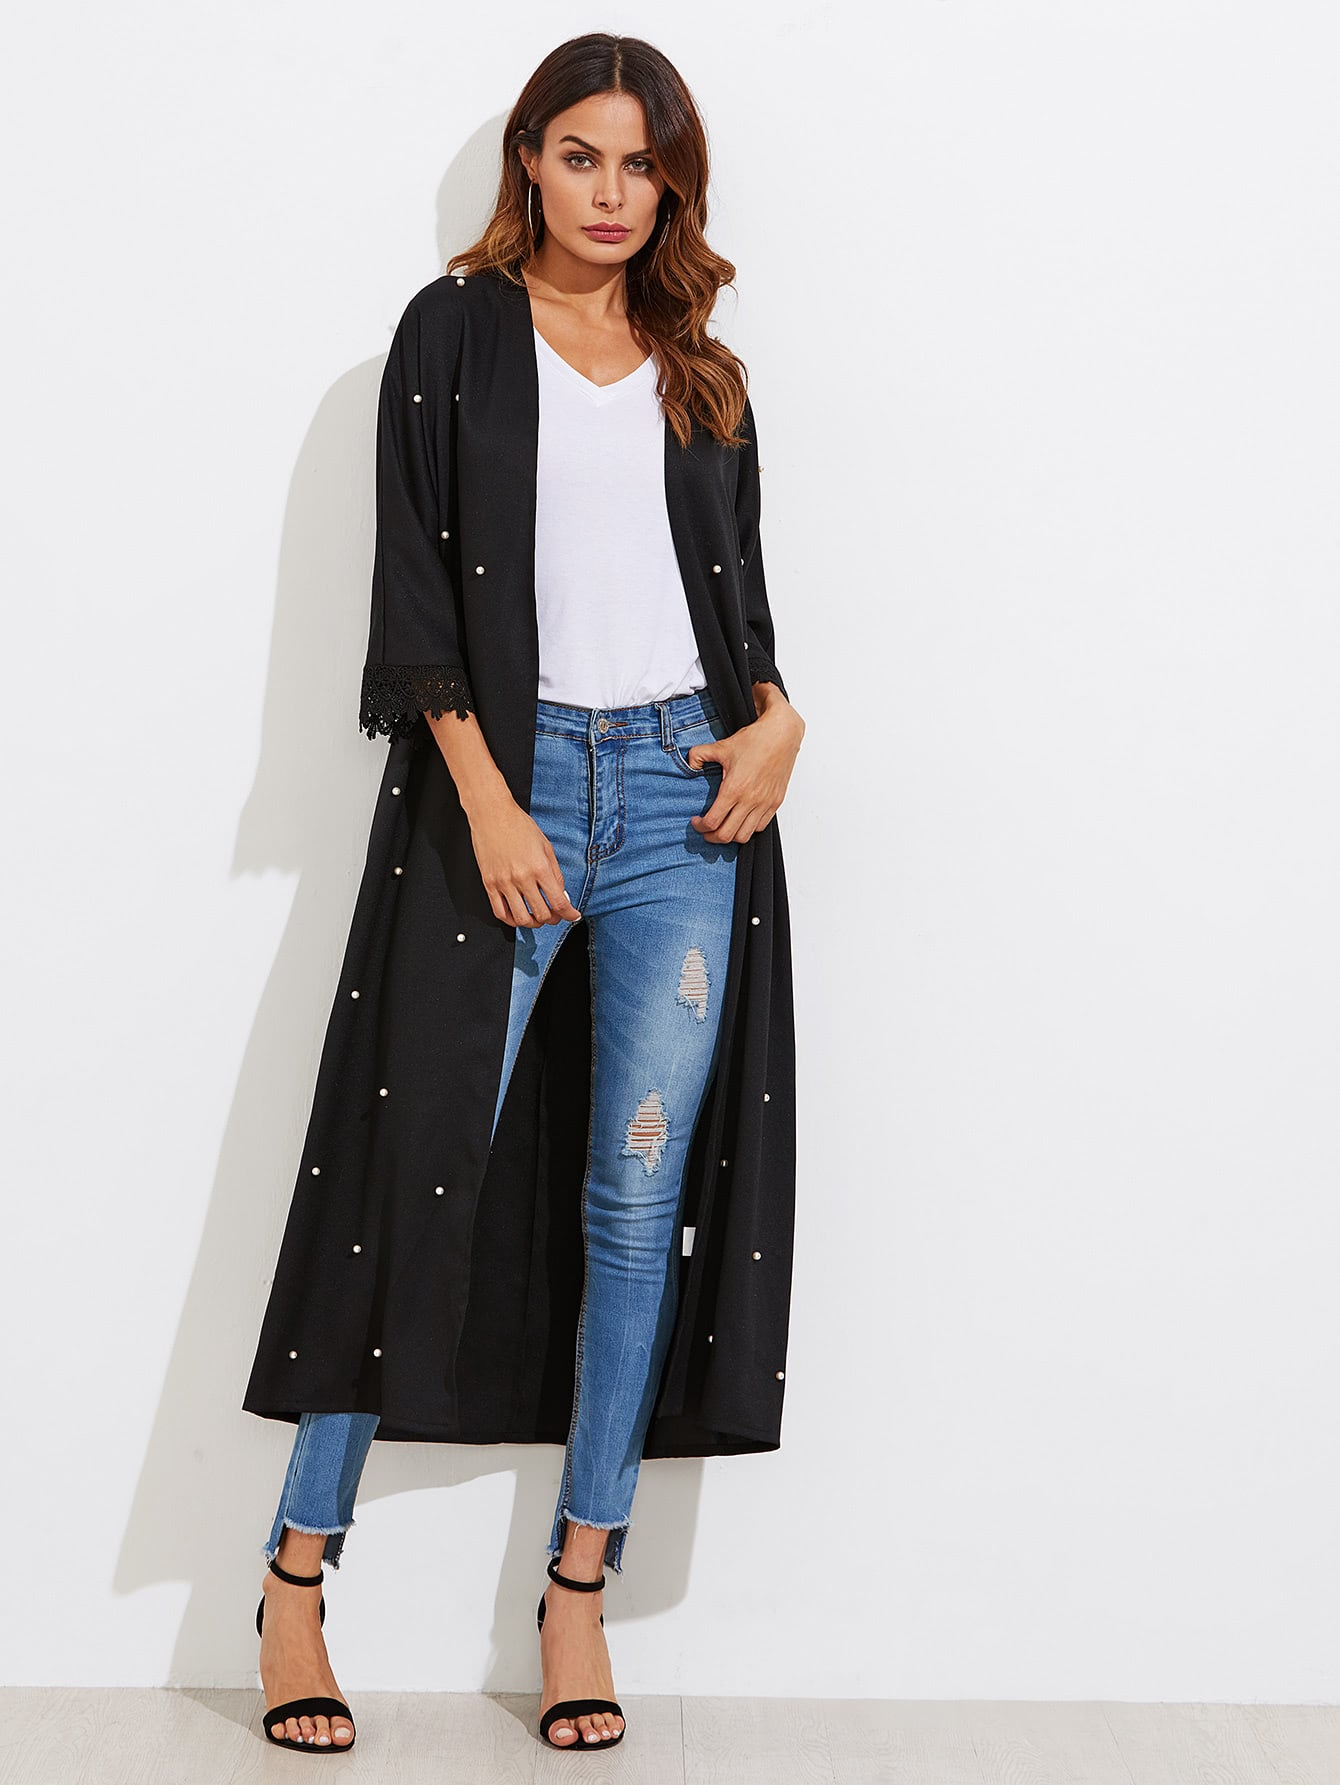 Pearl Embellished Scallop Lace Cuff Belted Coat цена и фото